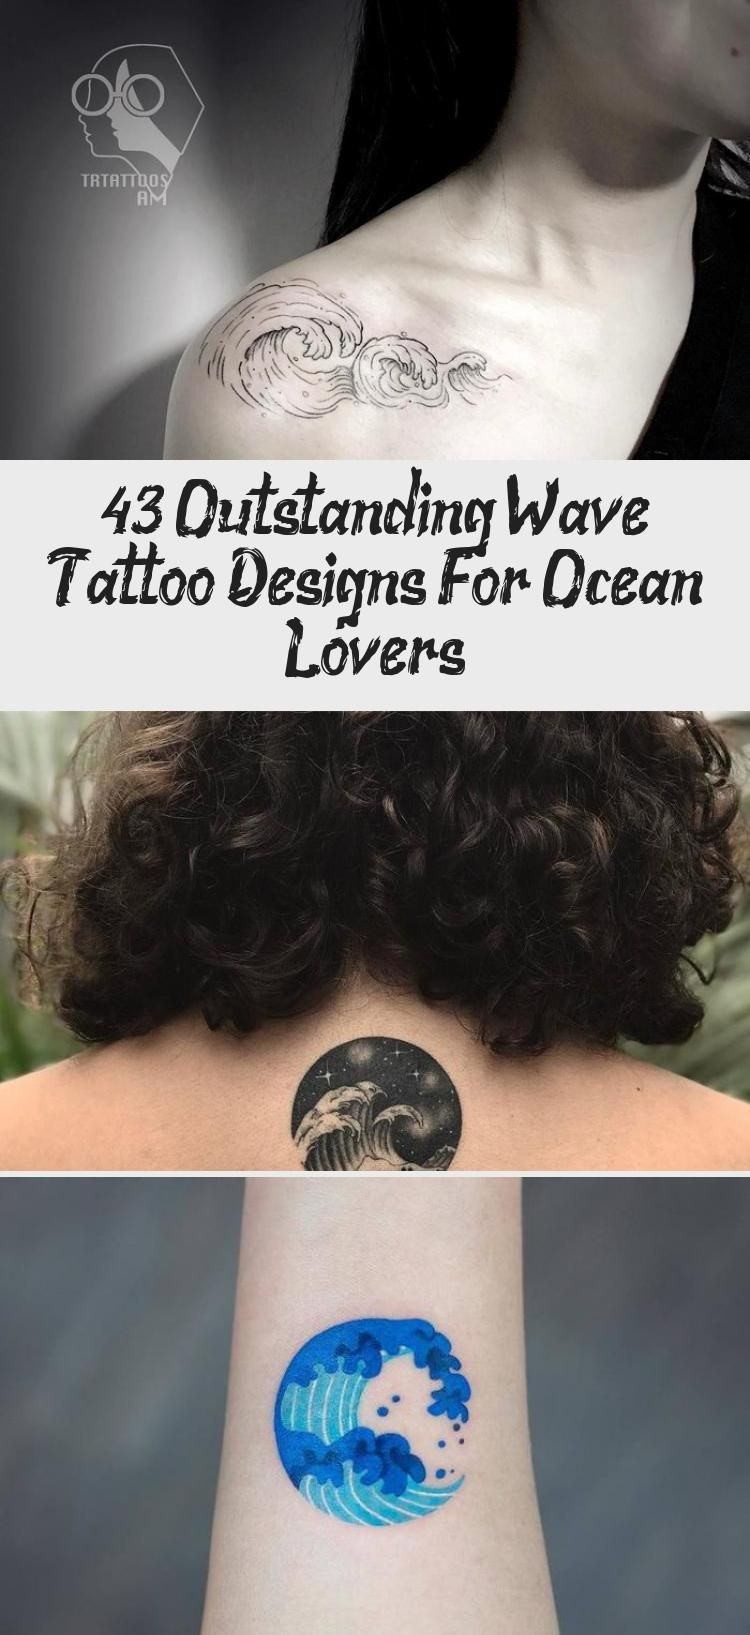 Photo of 43 Outstanding Wave Tattoo Designs For Ocean Lovers – Tattoos and Body Art